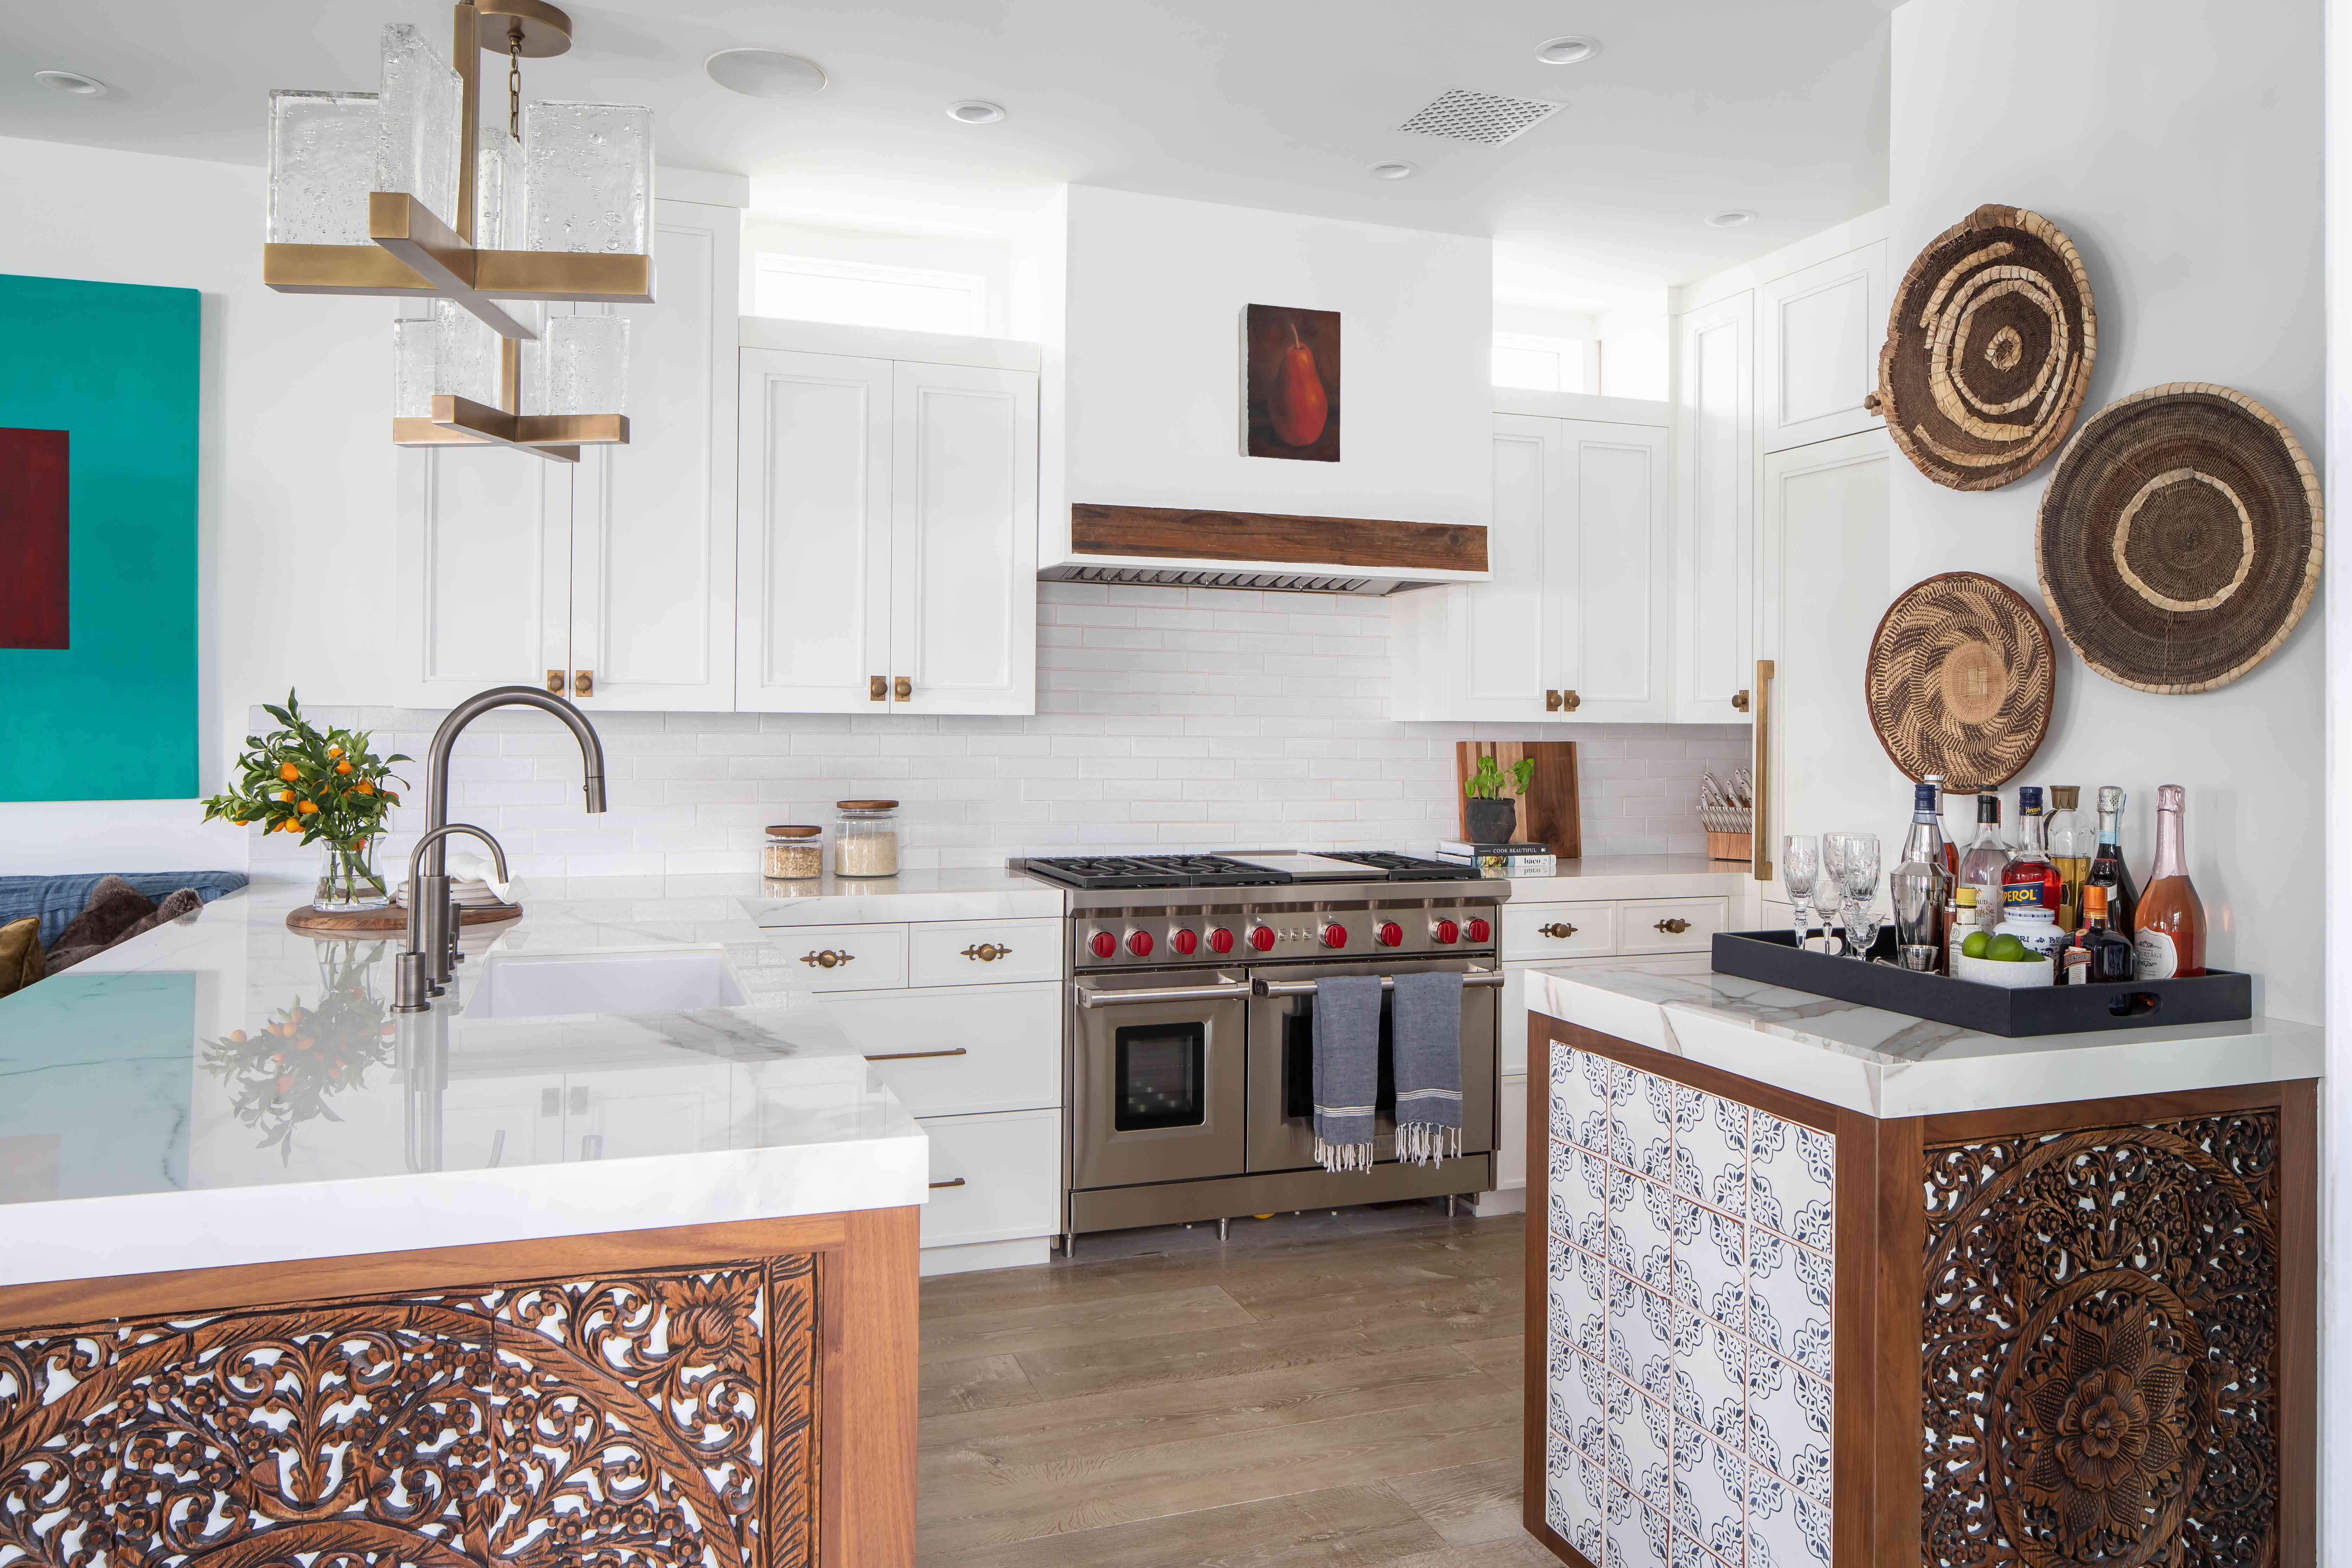 Kitchen with boho baskets on the wall.